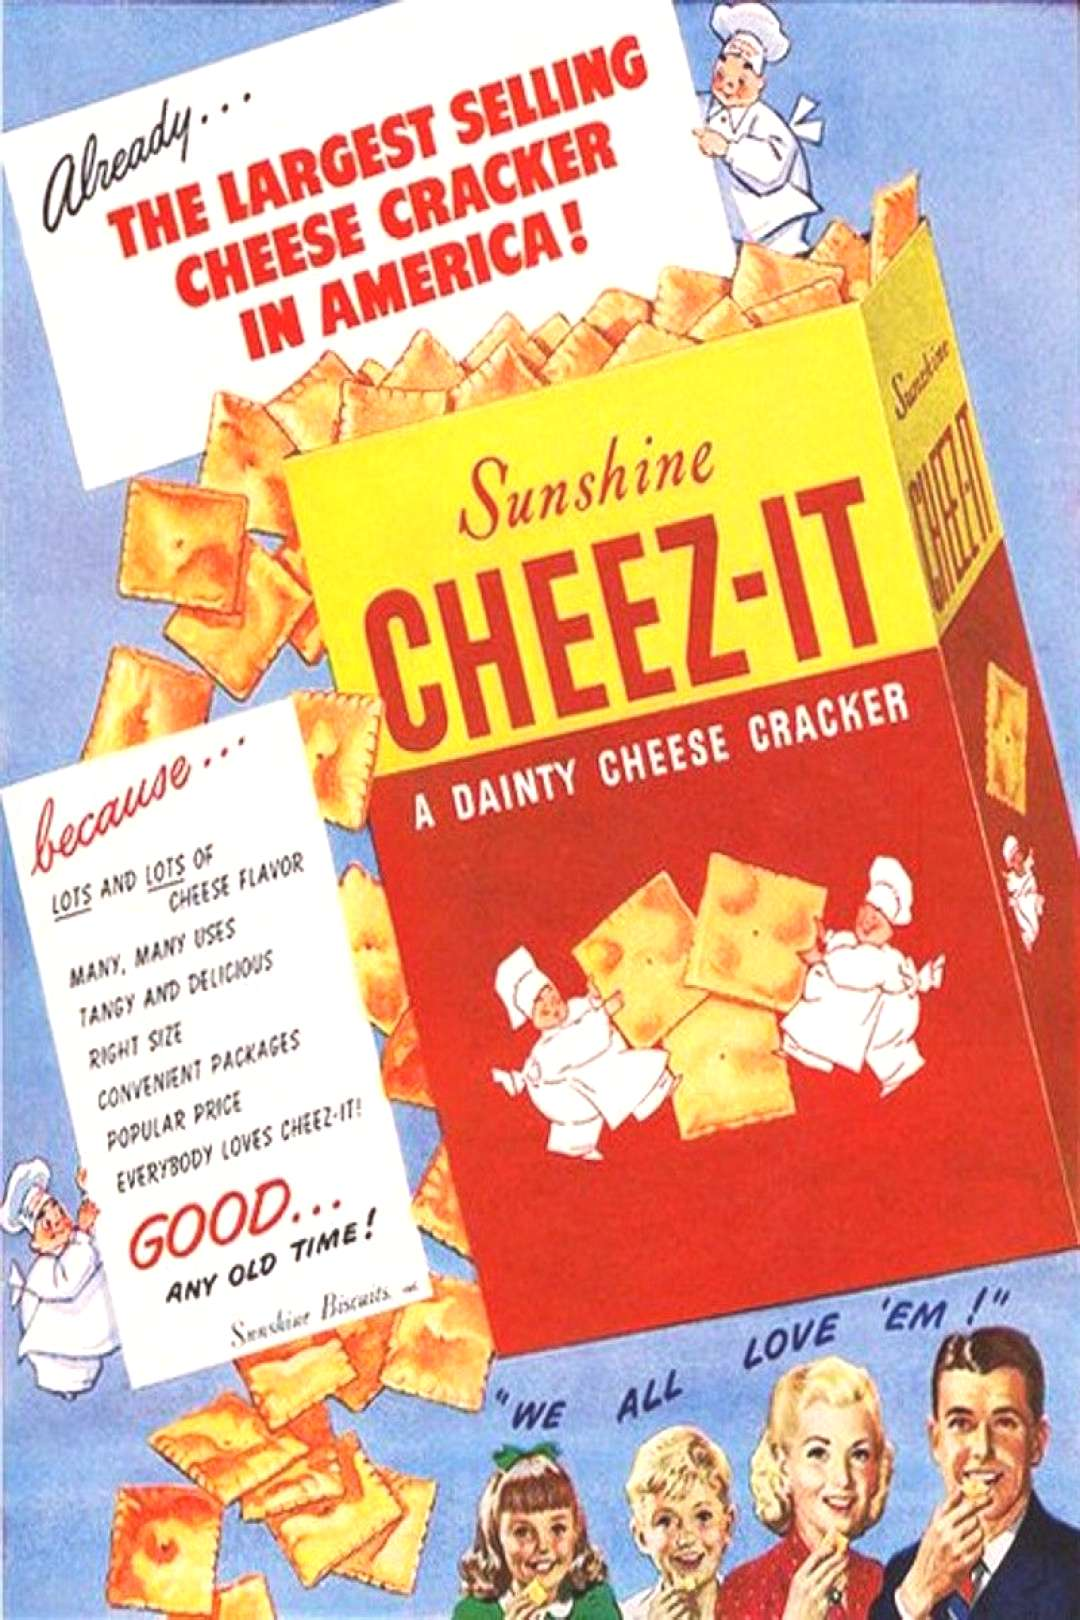 Were Cheez-Its really invented in Dayton? Yes, and here's the story